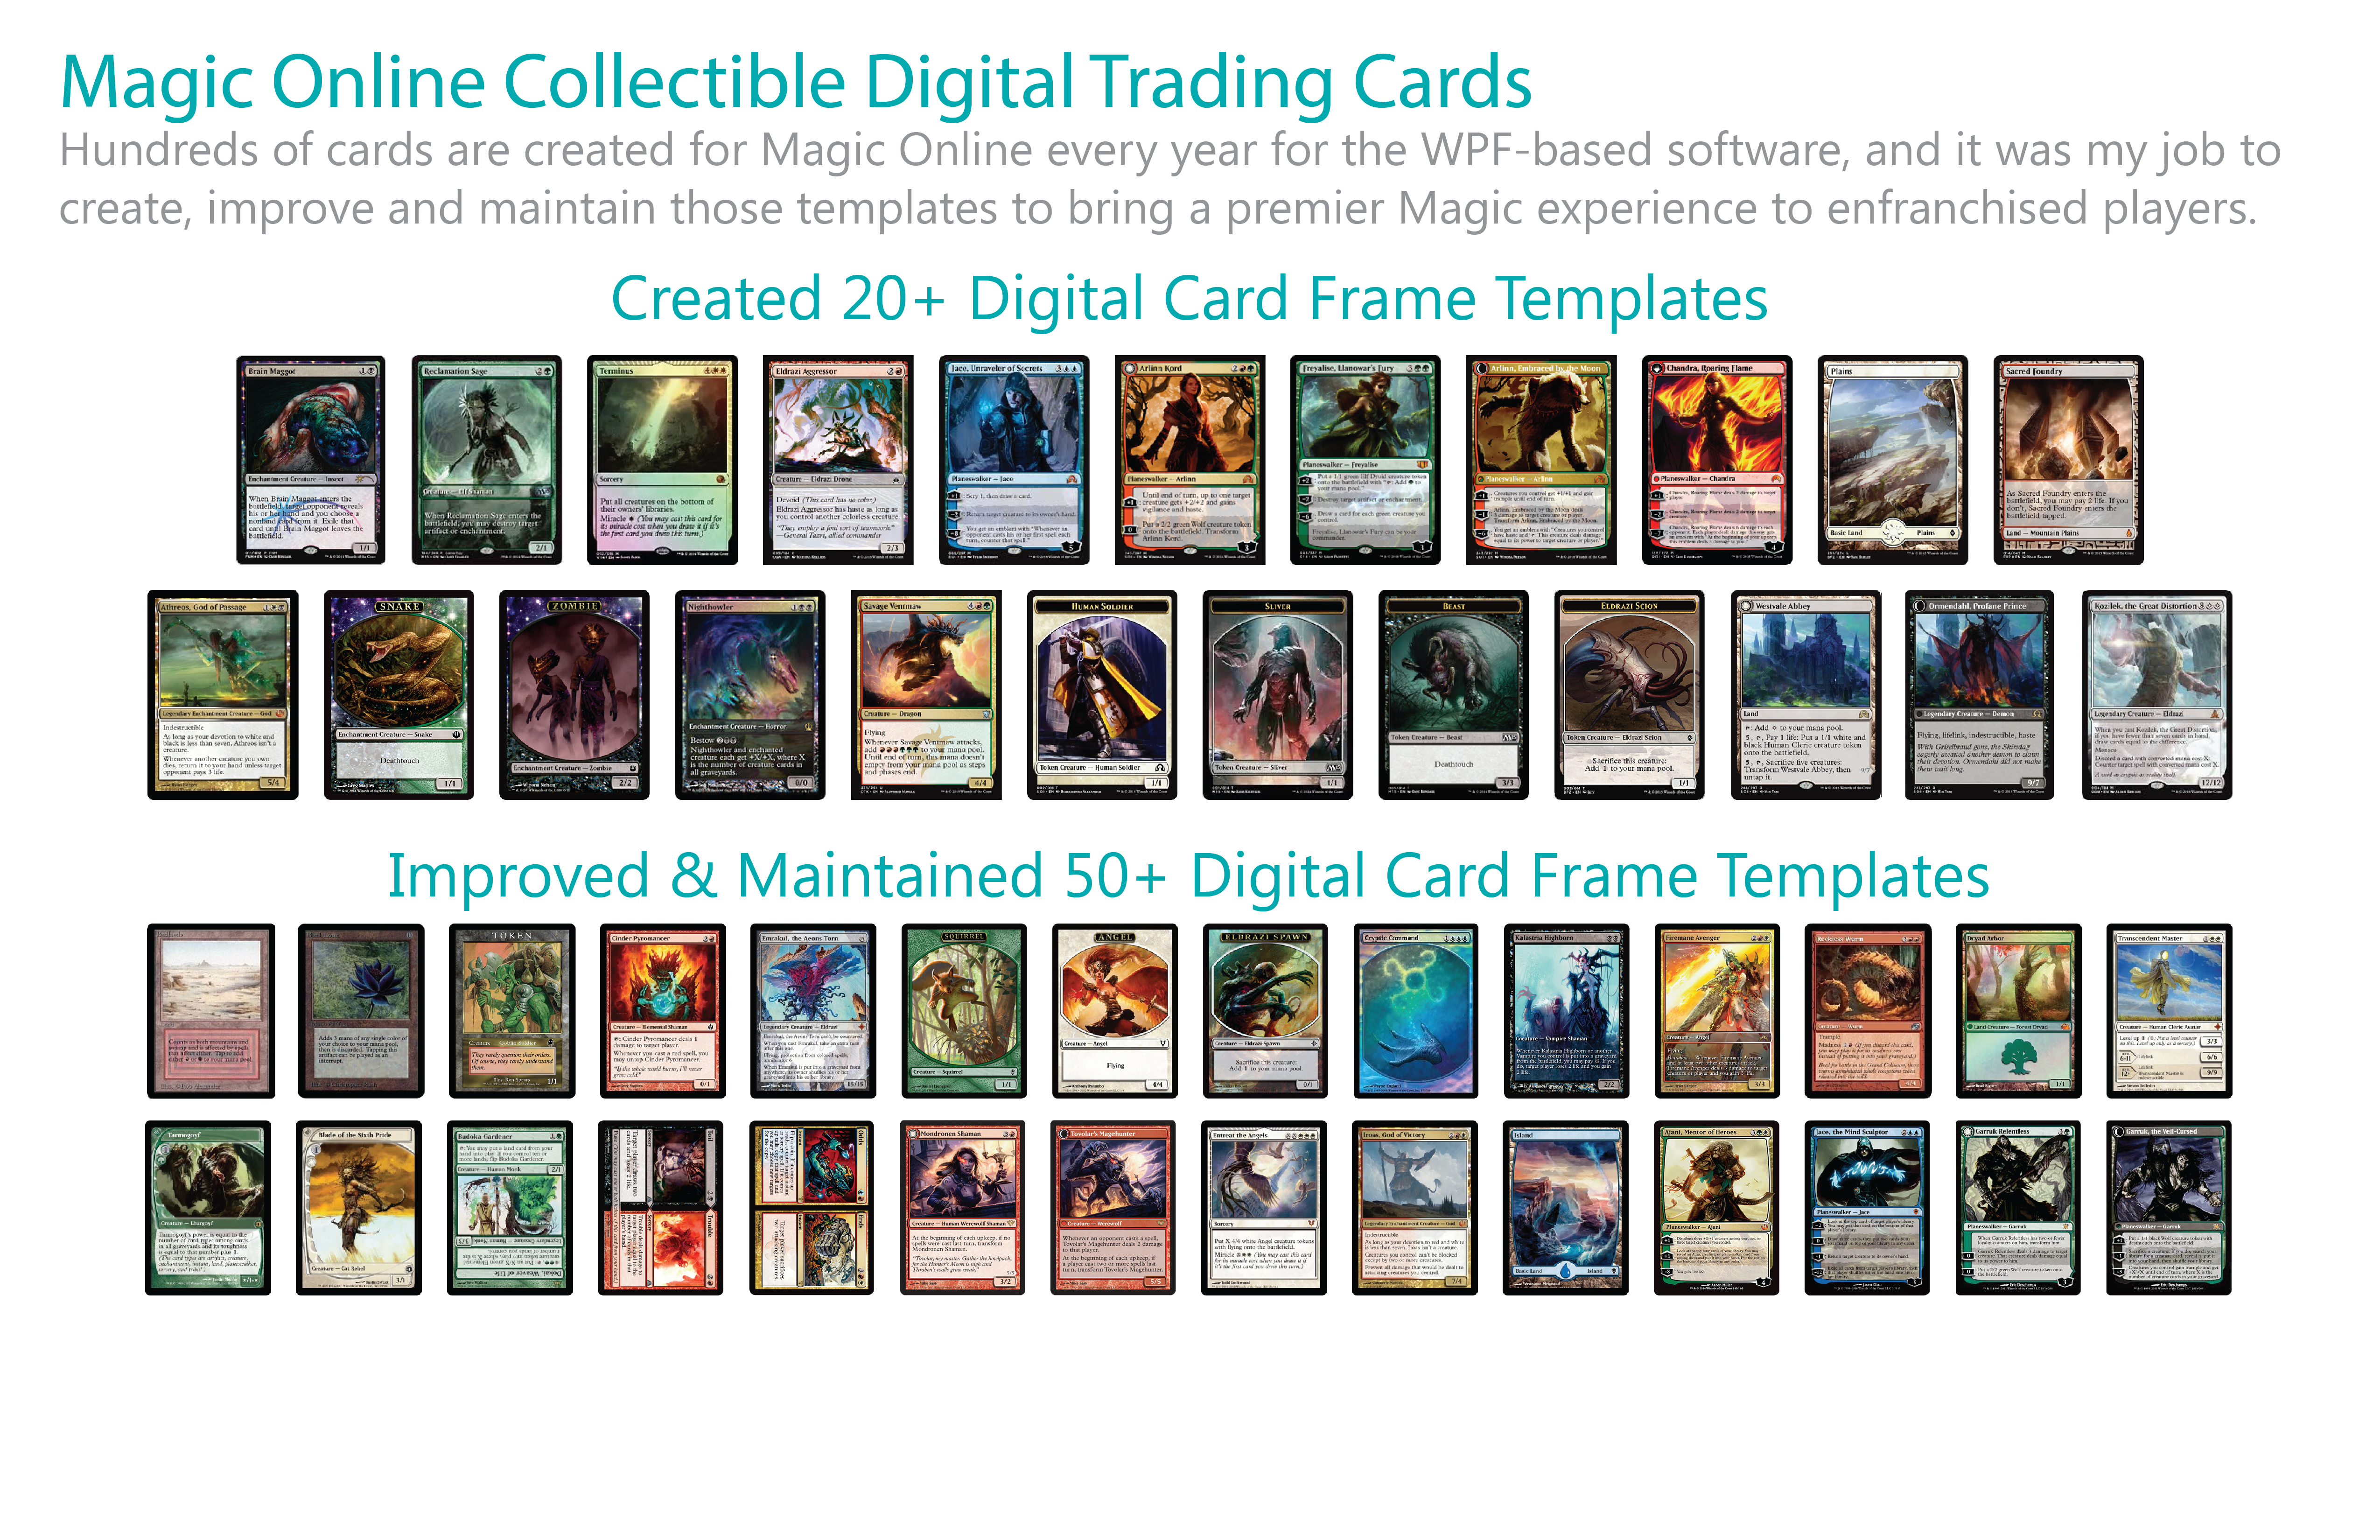 Magic Online Collectible Digital Trading Cards